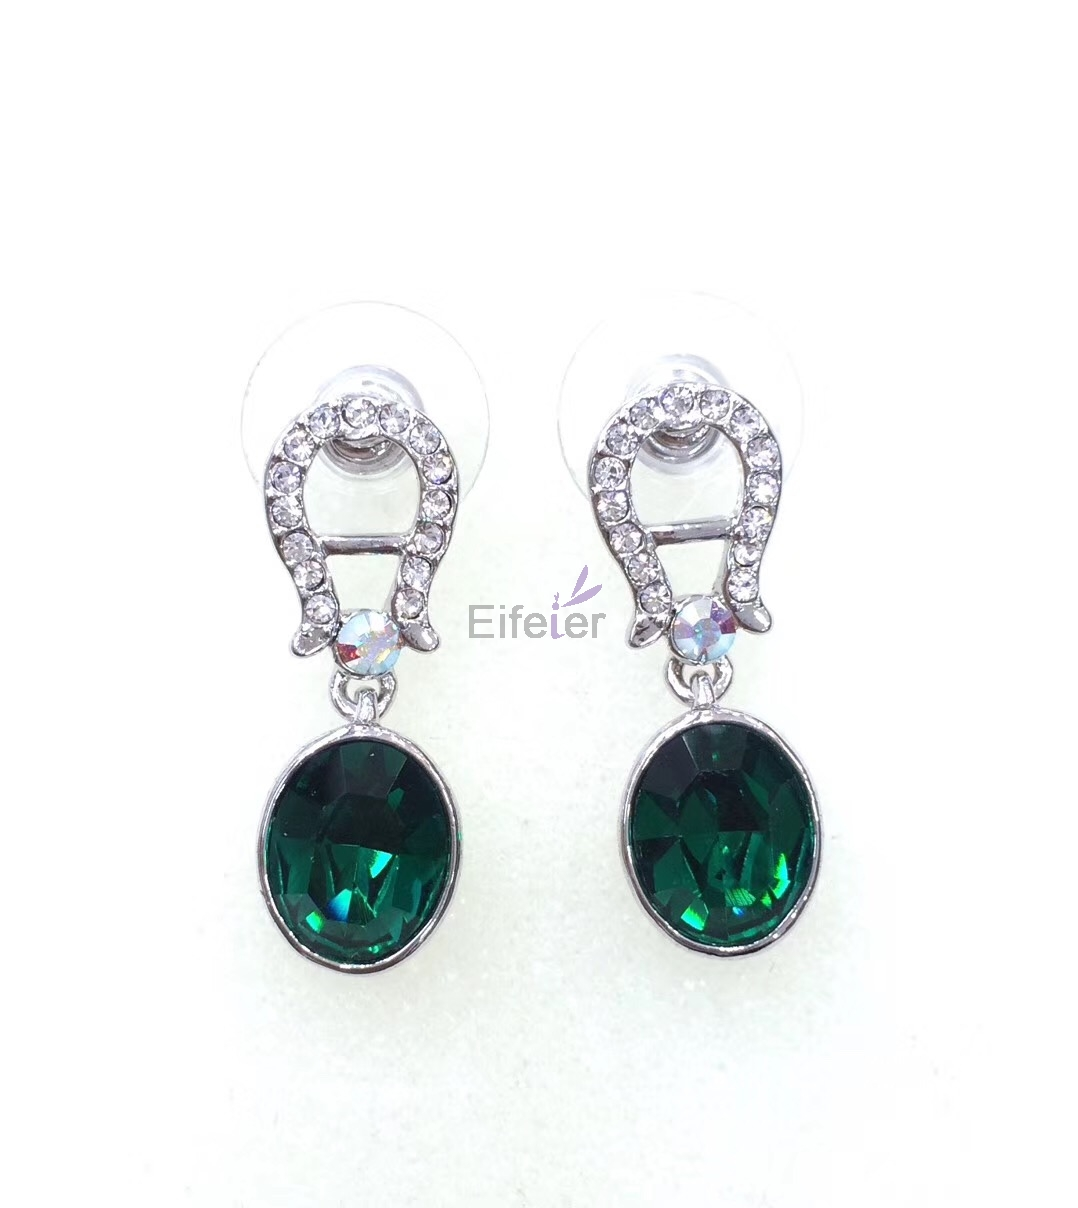 Swarovski Elements Earrings